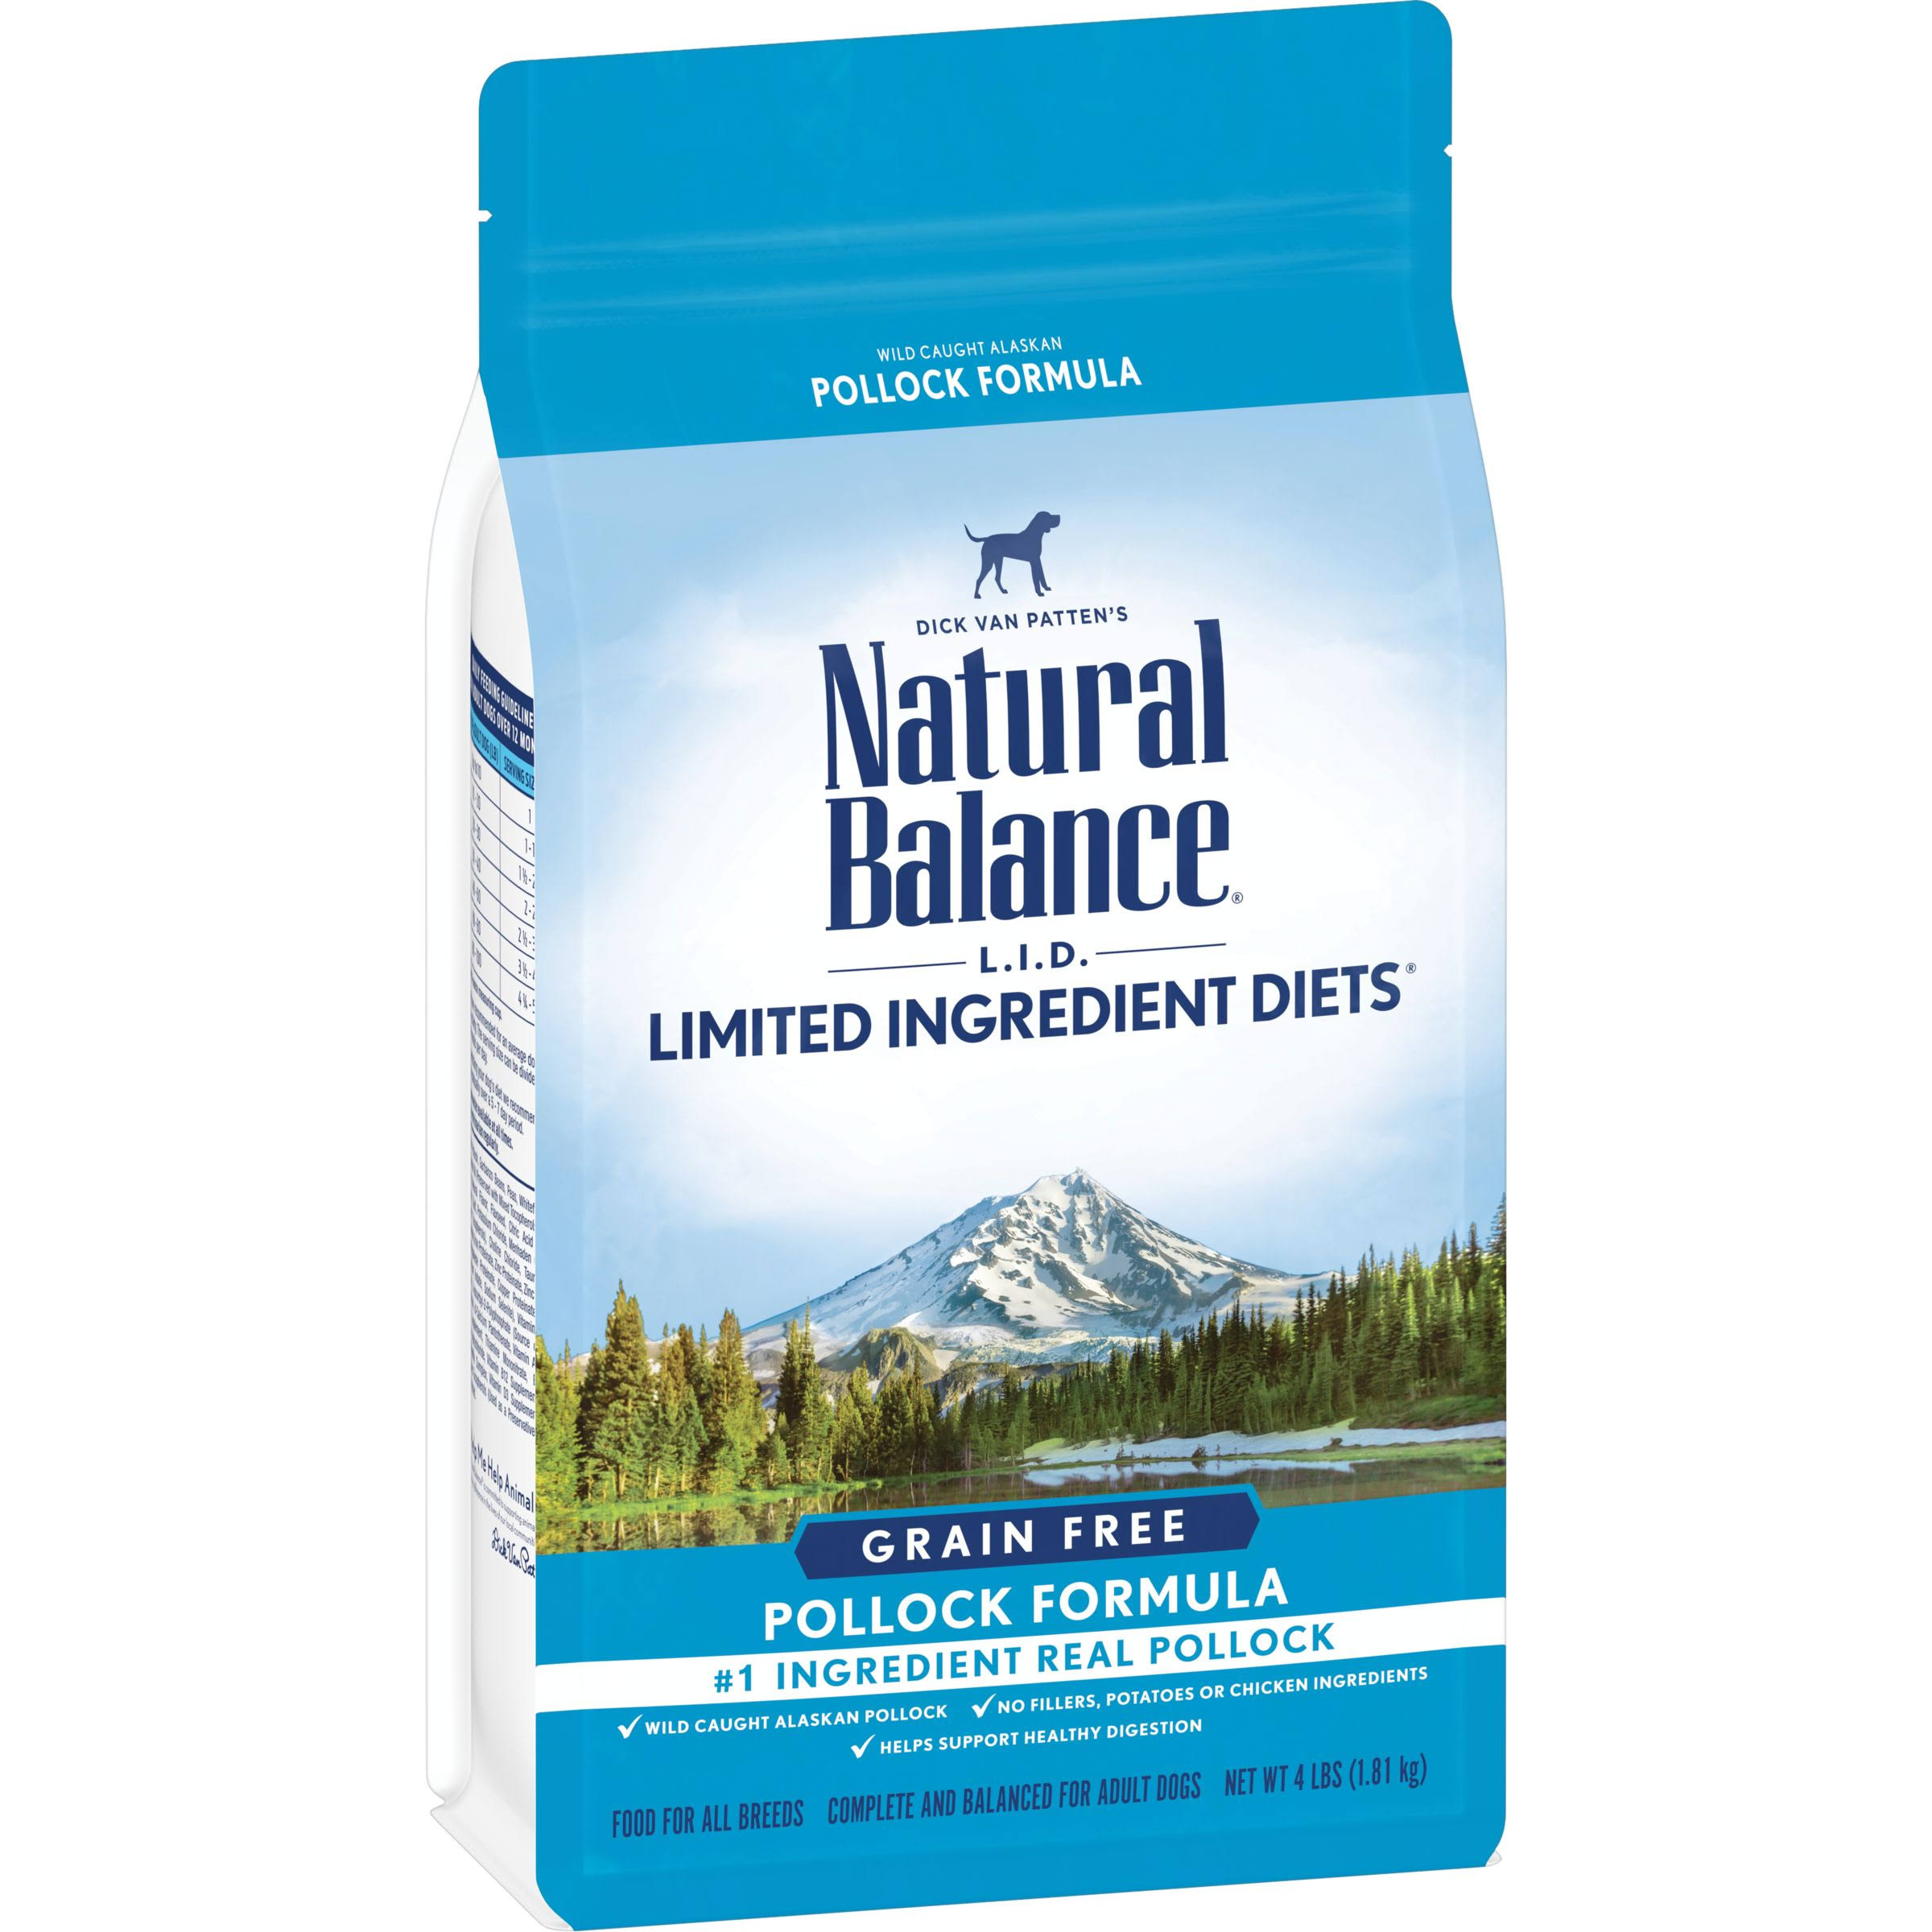 Natural Balance L.I.D. Limited Ingredient Diets Grain Free High Protein Pollock Formula Dry Dog Food (4 lb)